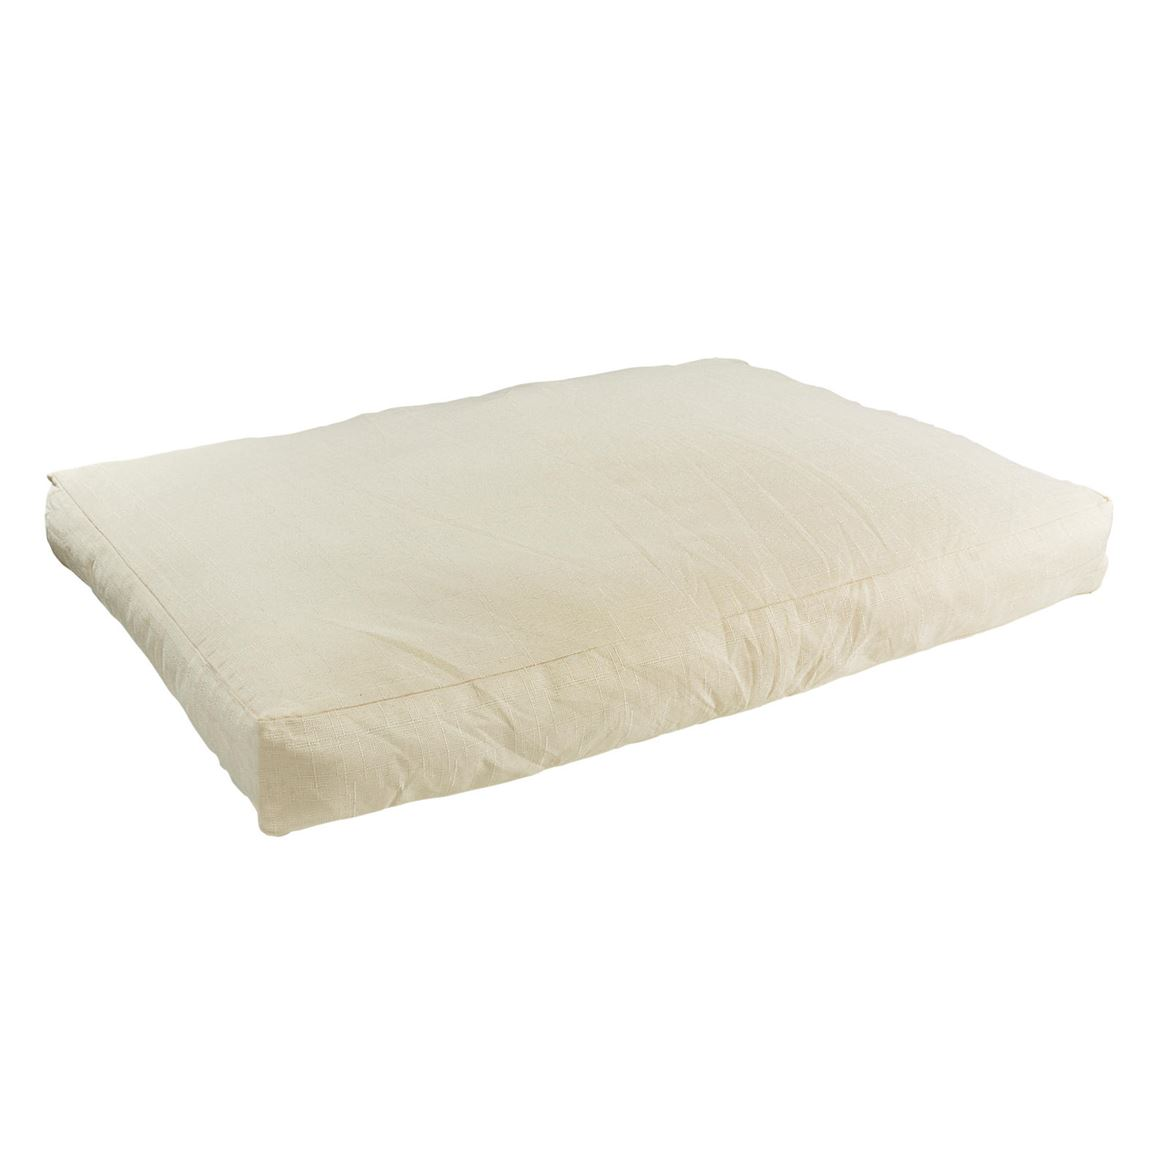 MAX Coussin beige H 10 x Larg. 60 x Long. 85 cm_max-coussin-beige-h-10-x-larg--60-x-long--85-cm